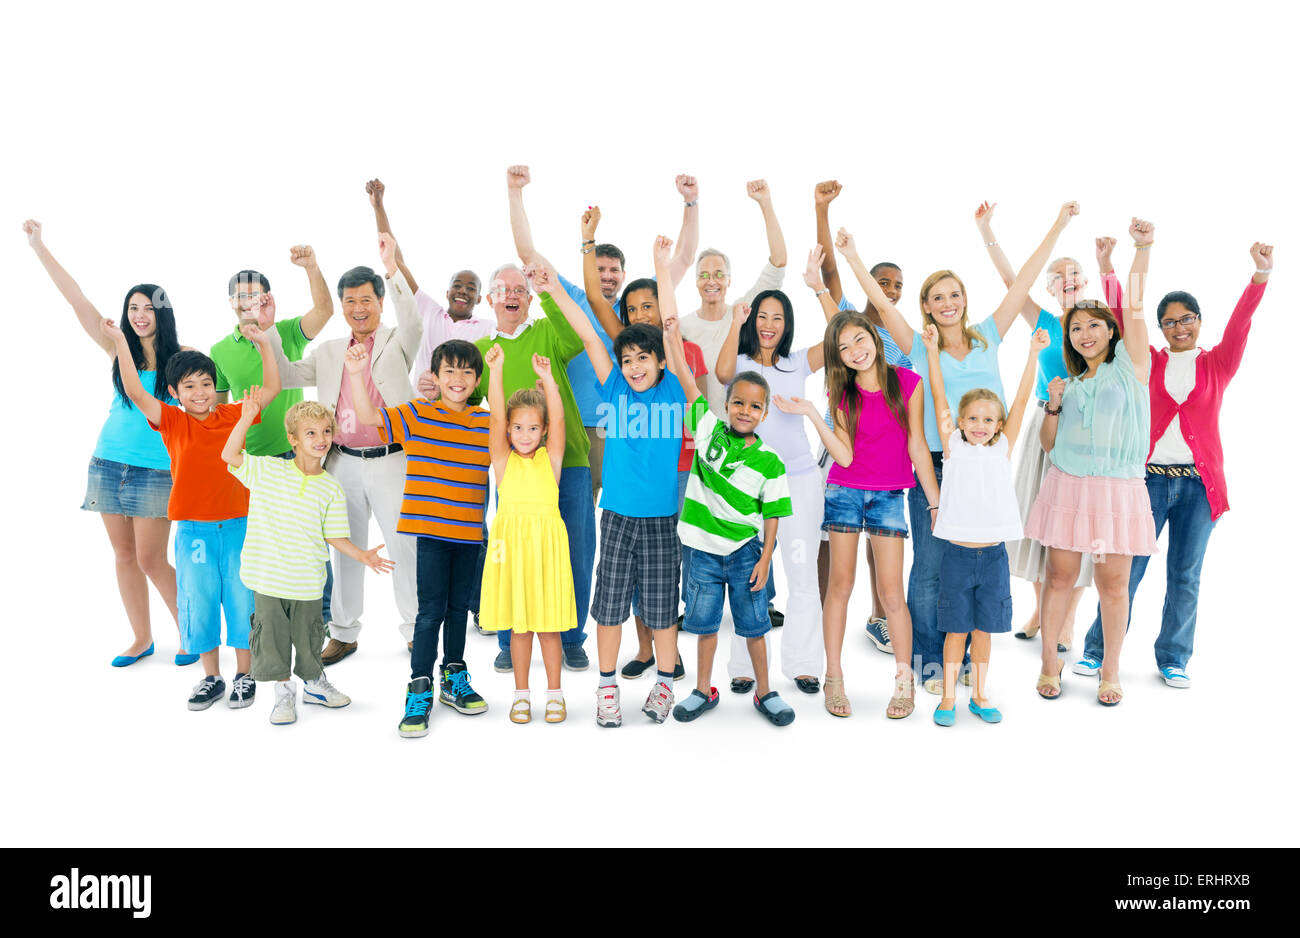 Group of mixed age people - Stock Image